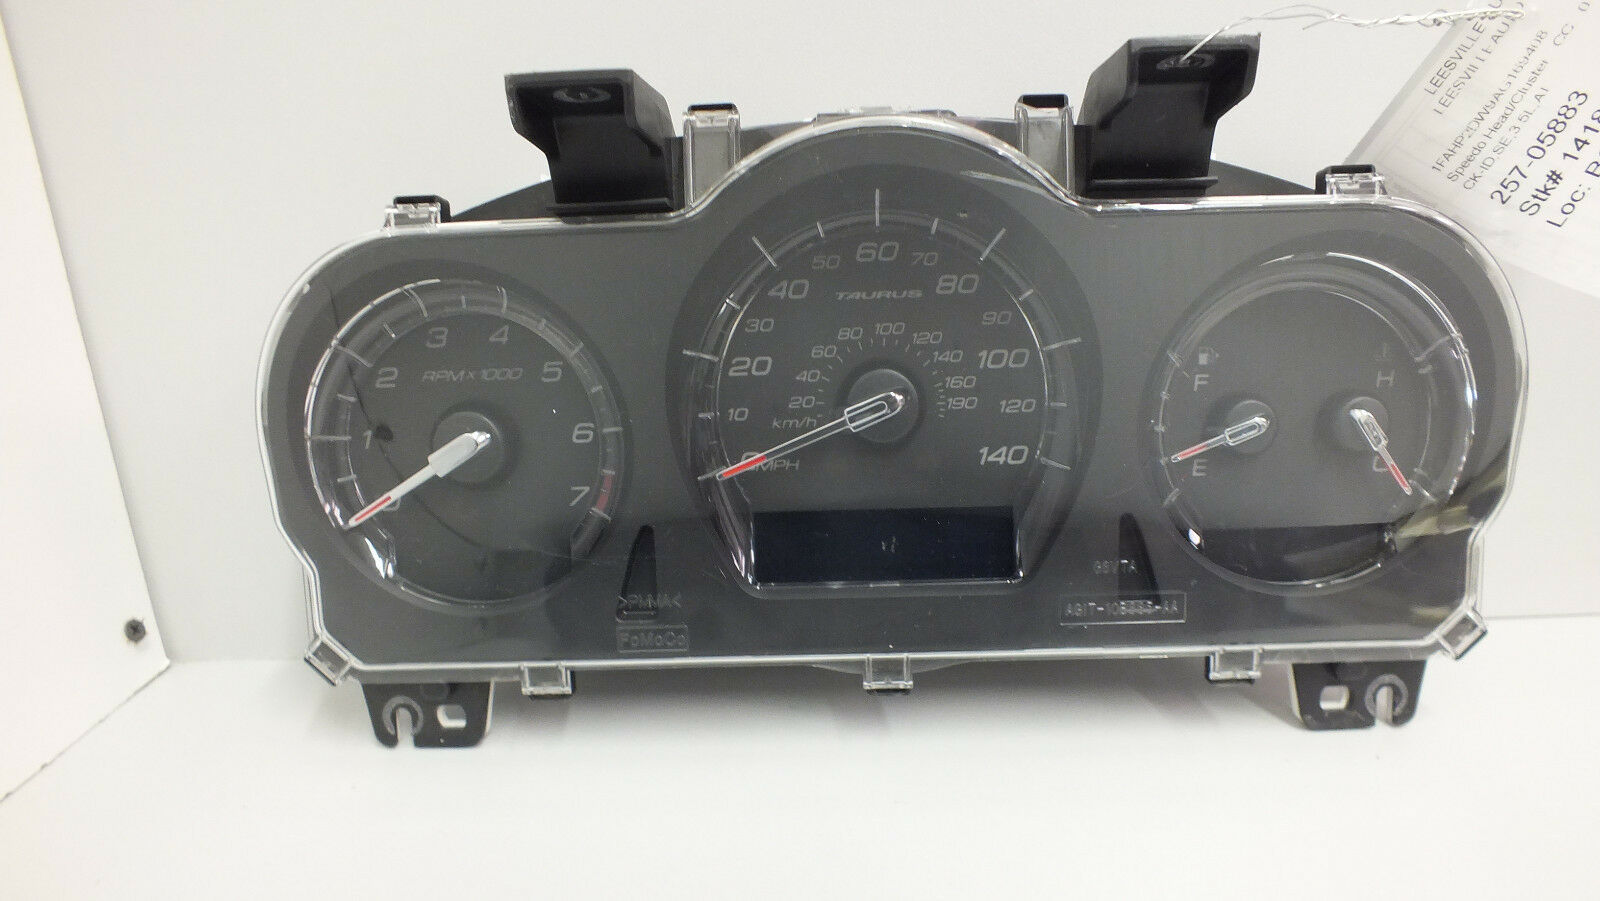 Primary image for 2010 FORD TAURUS SE 3.5L AT INSTRUMENT CLUSTER AG1T-10849-JC (75k miles) #559D